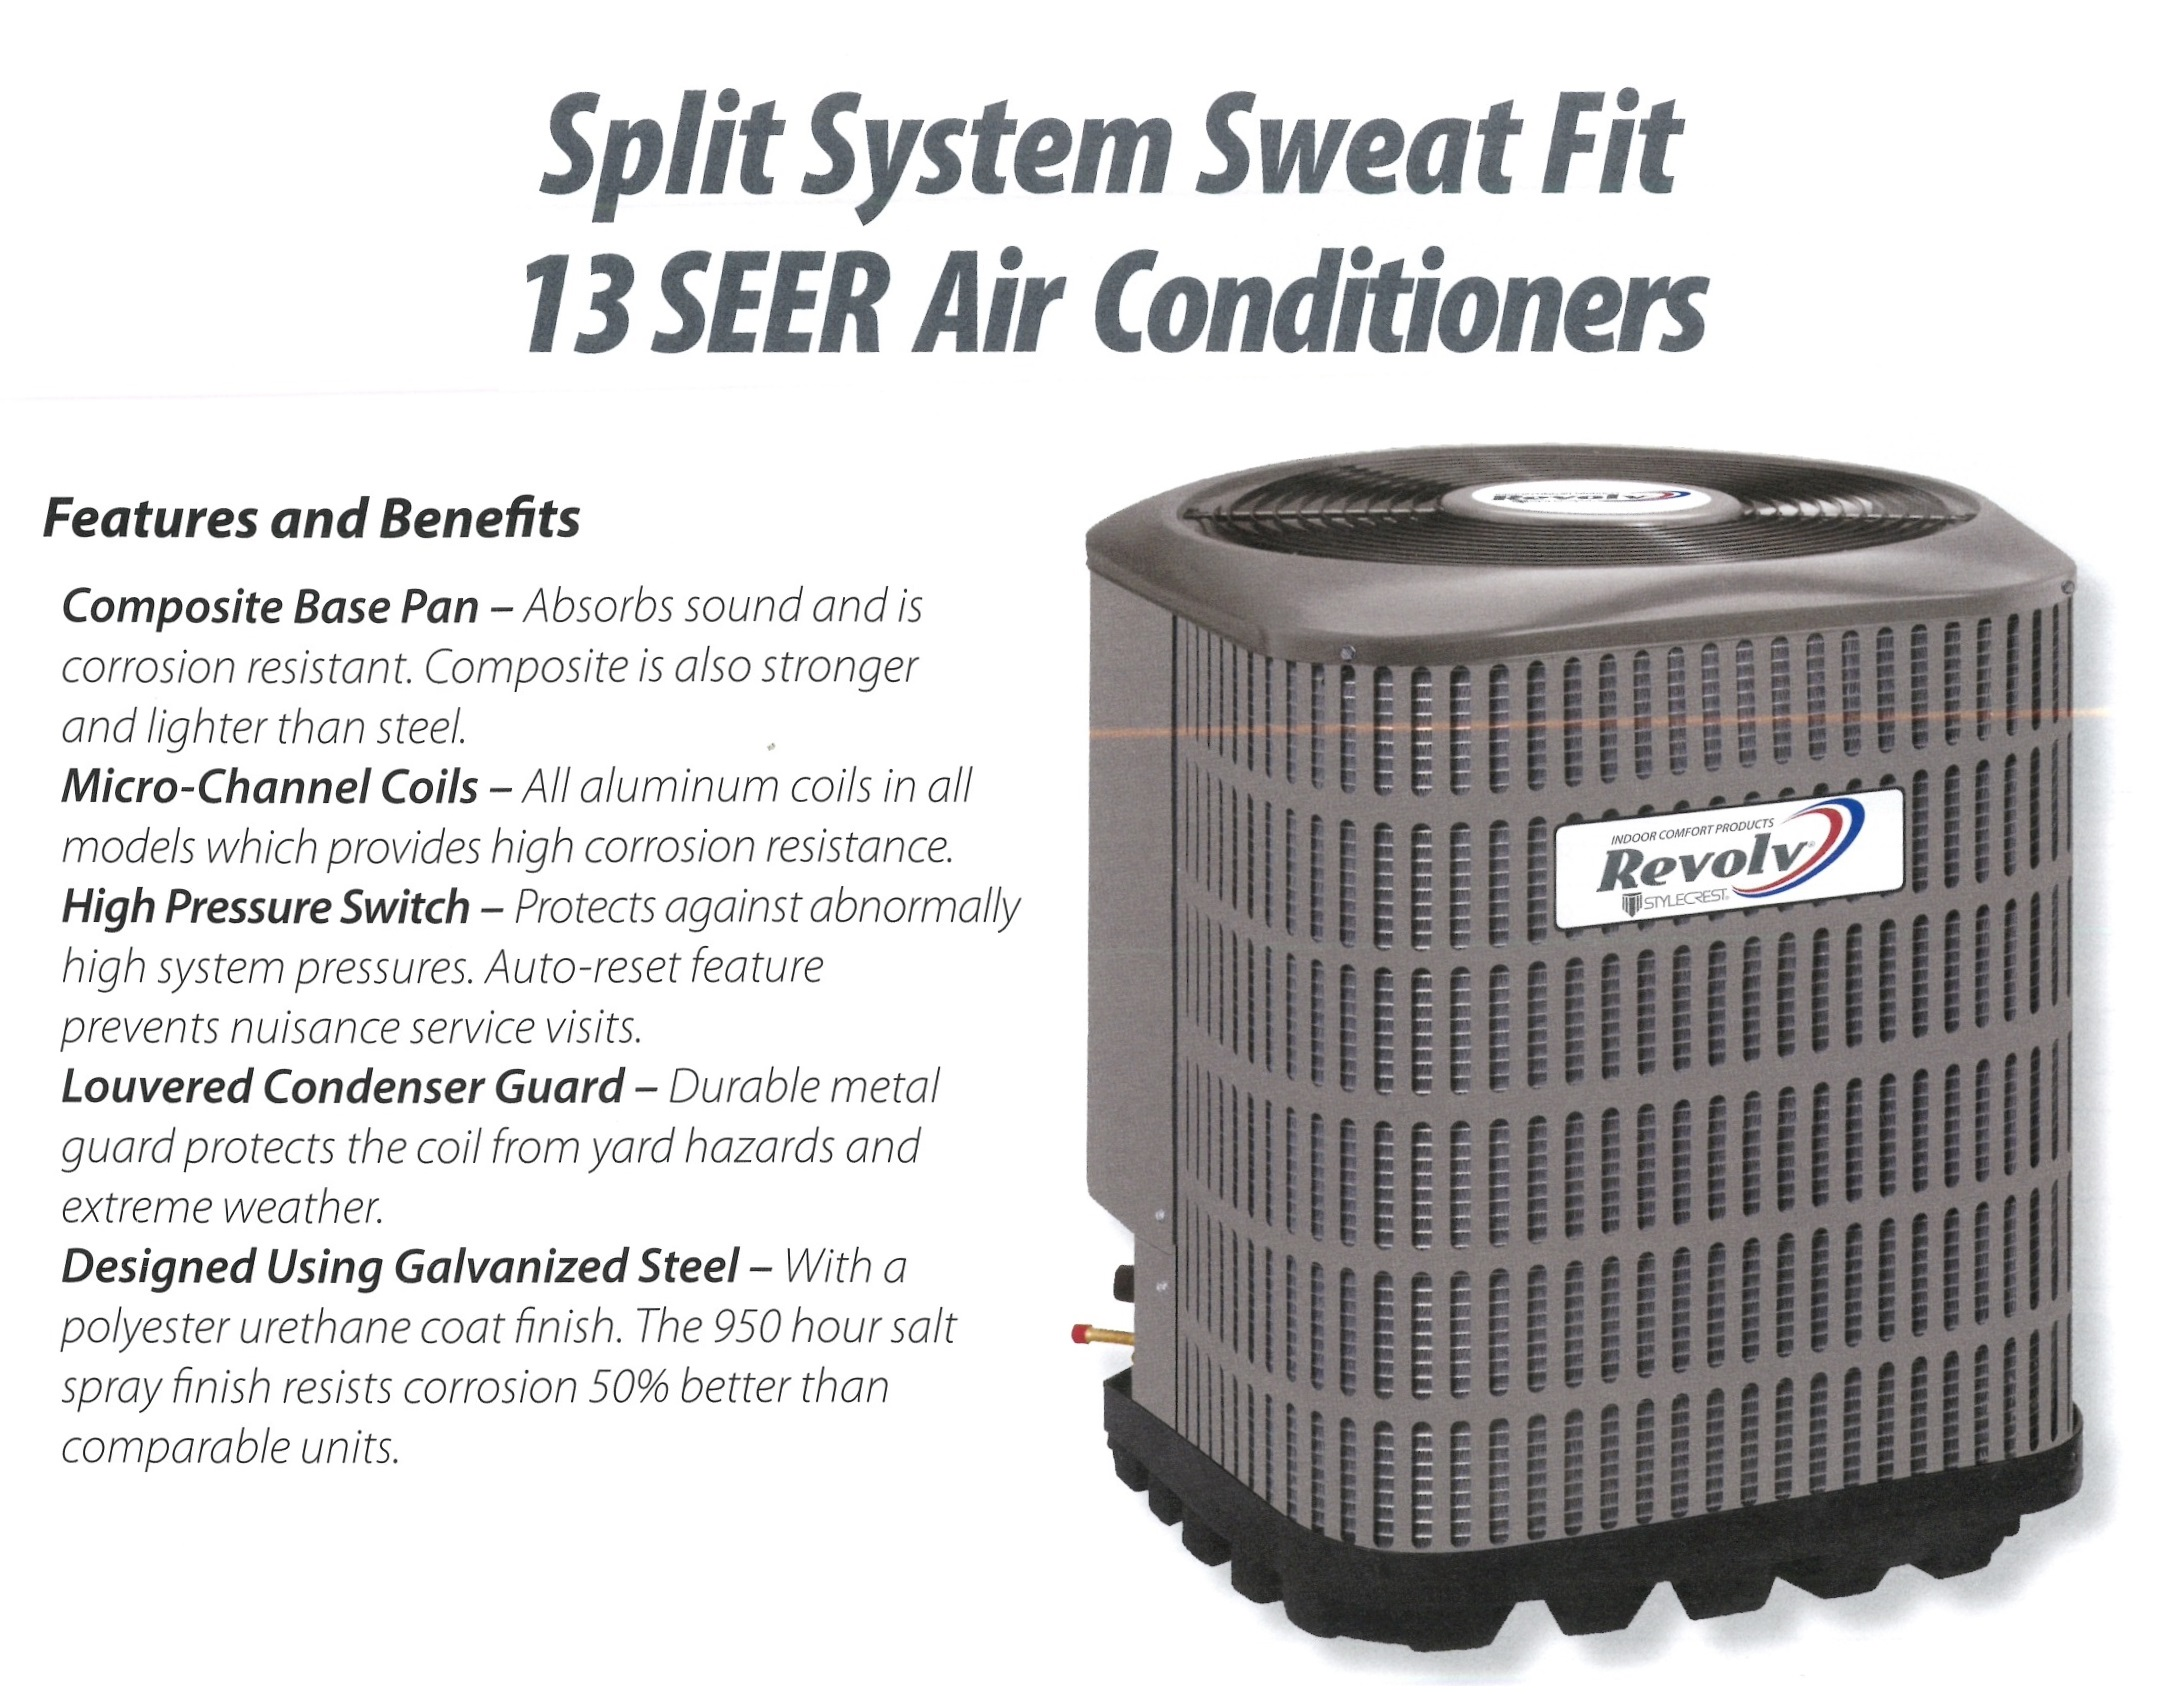 Split System Sweat Fit 13 SEER Air Conditioners